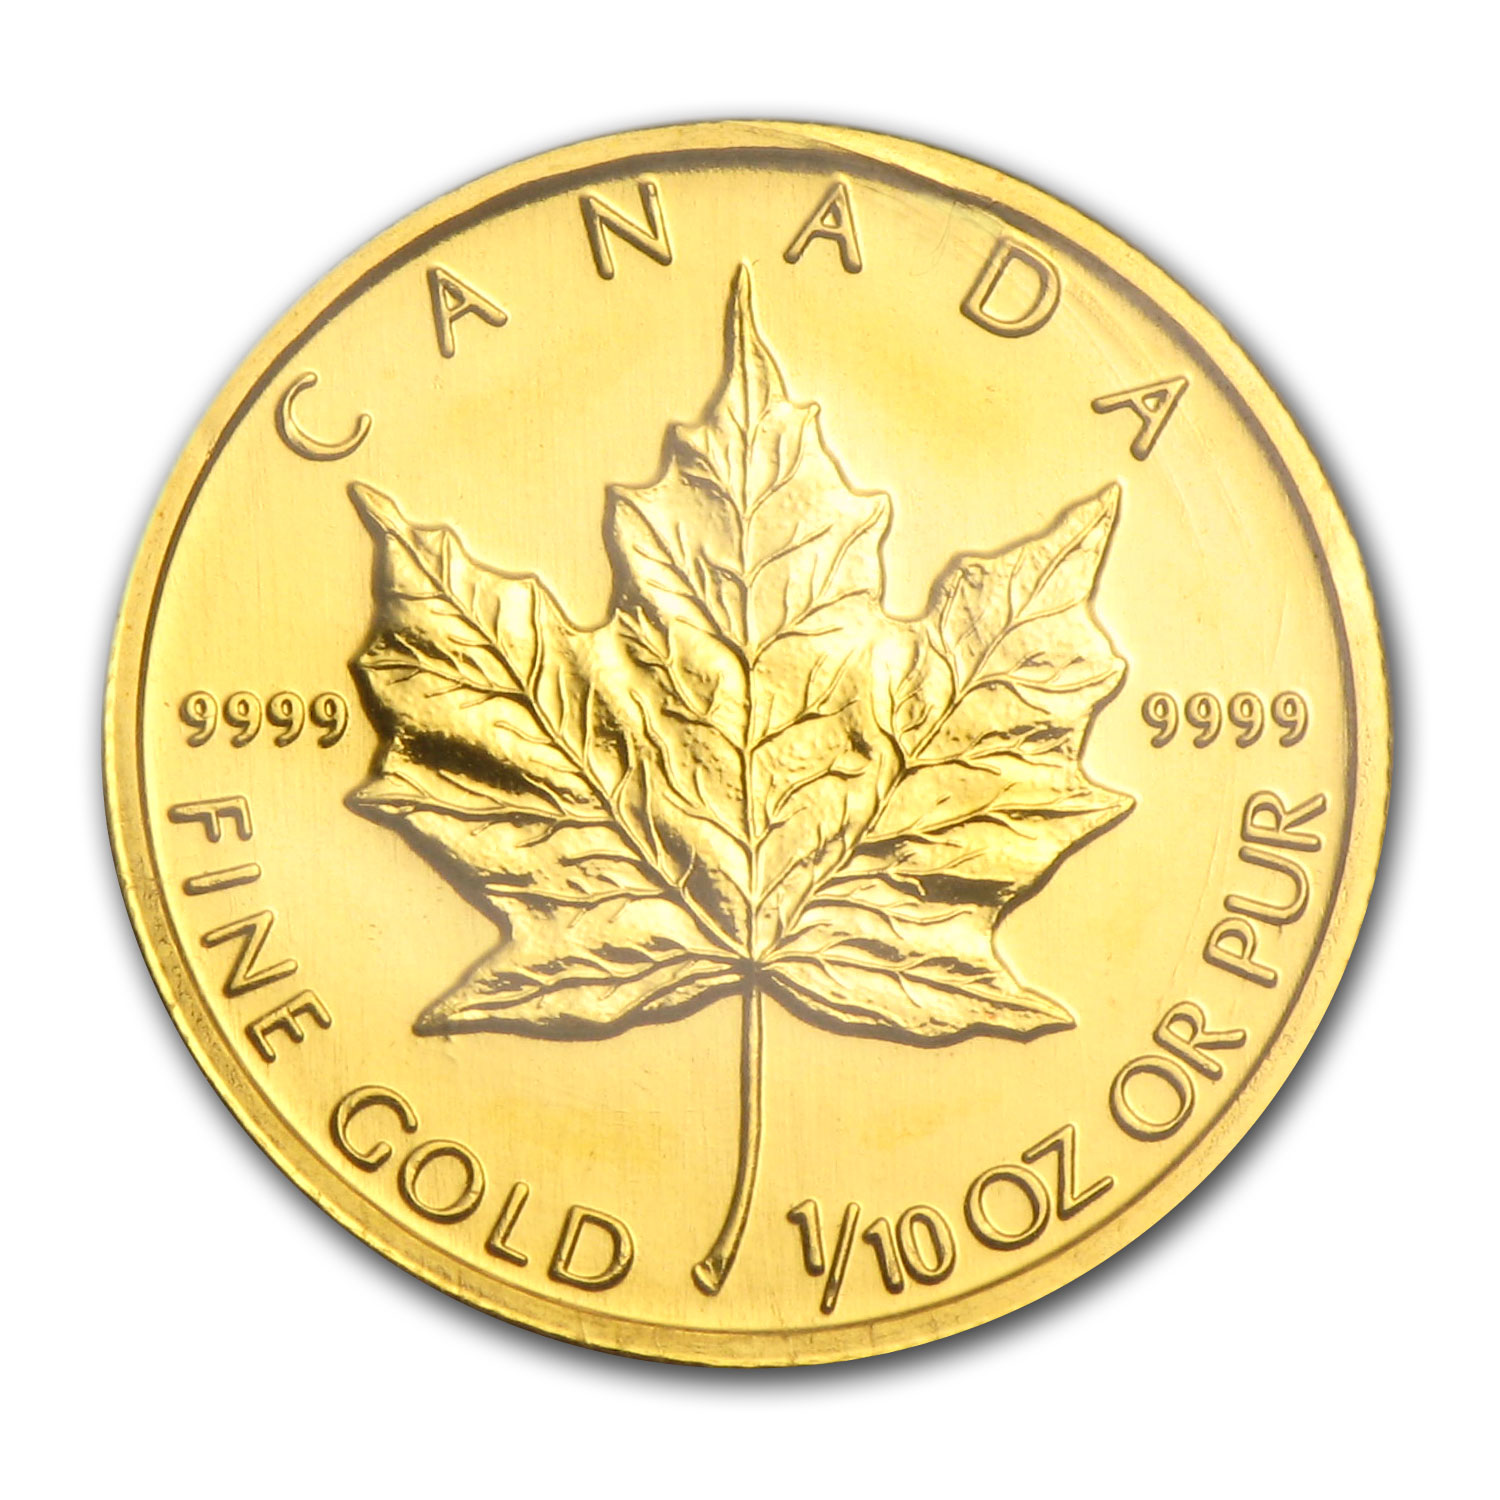 2005 Canada 1/10 oz Gold Maple Leaf BU